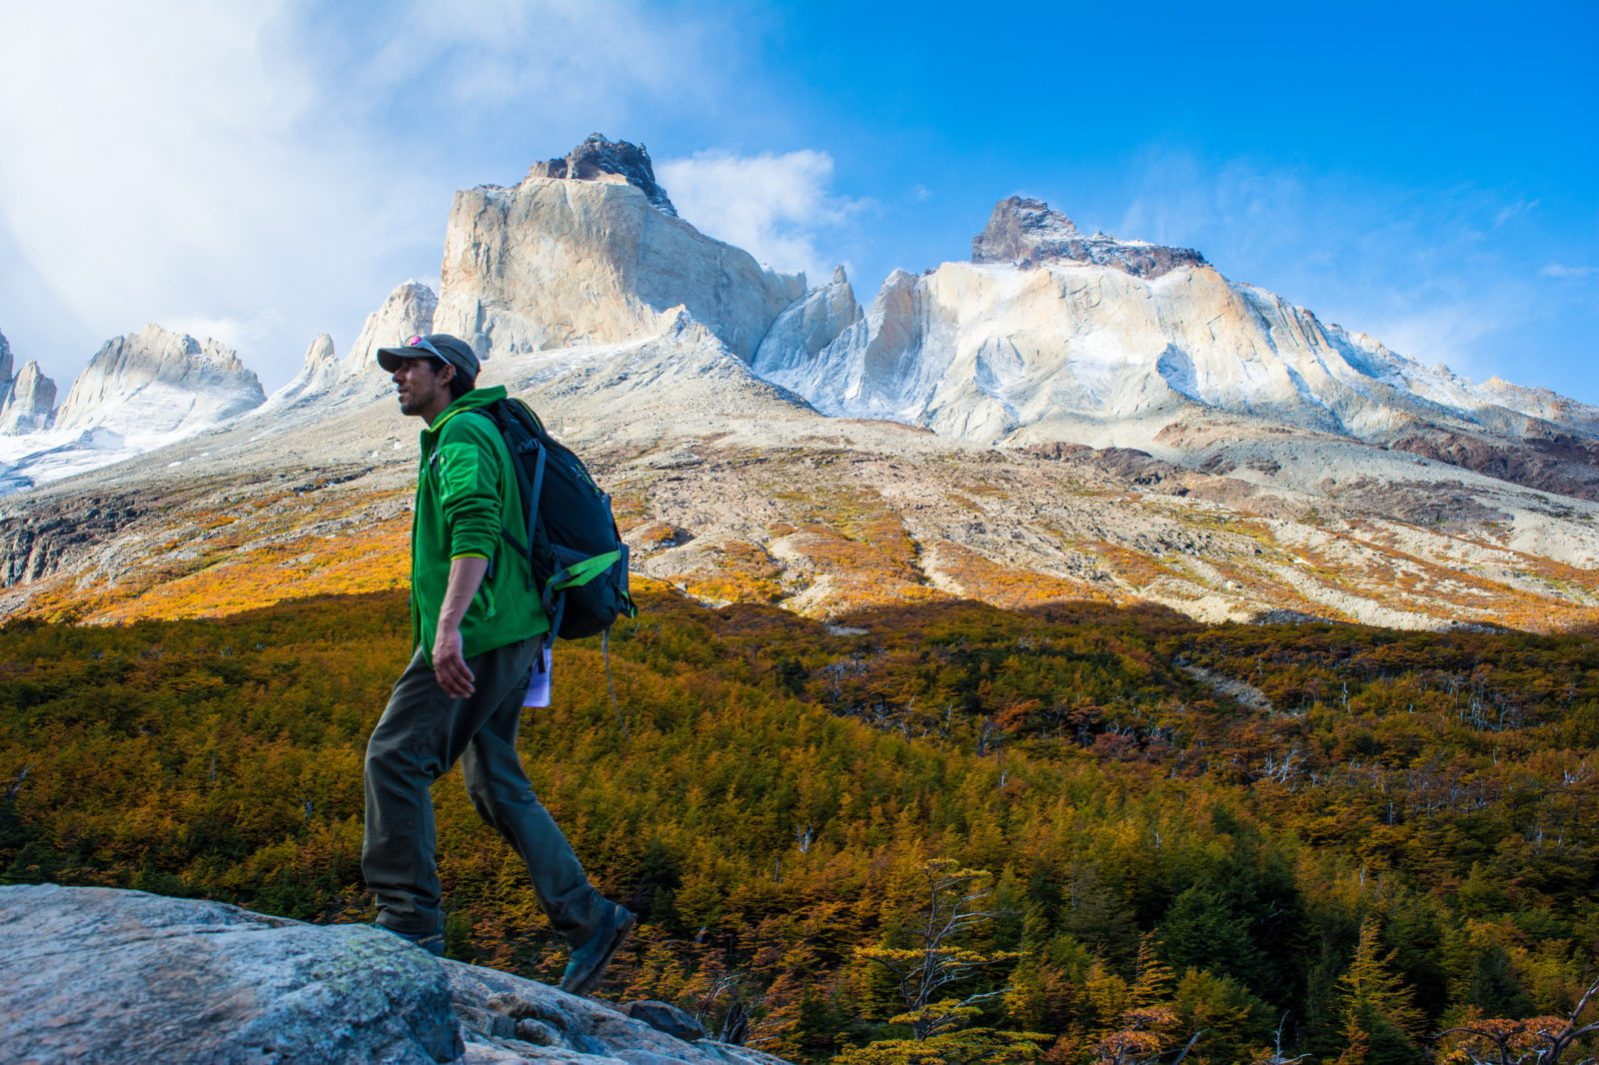 The Paine Massif's Heart: Valle Frances